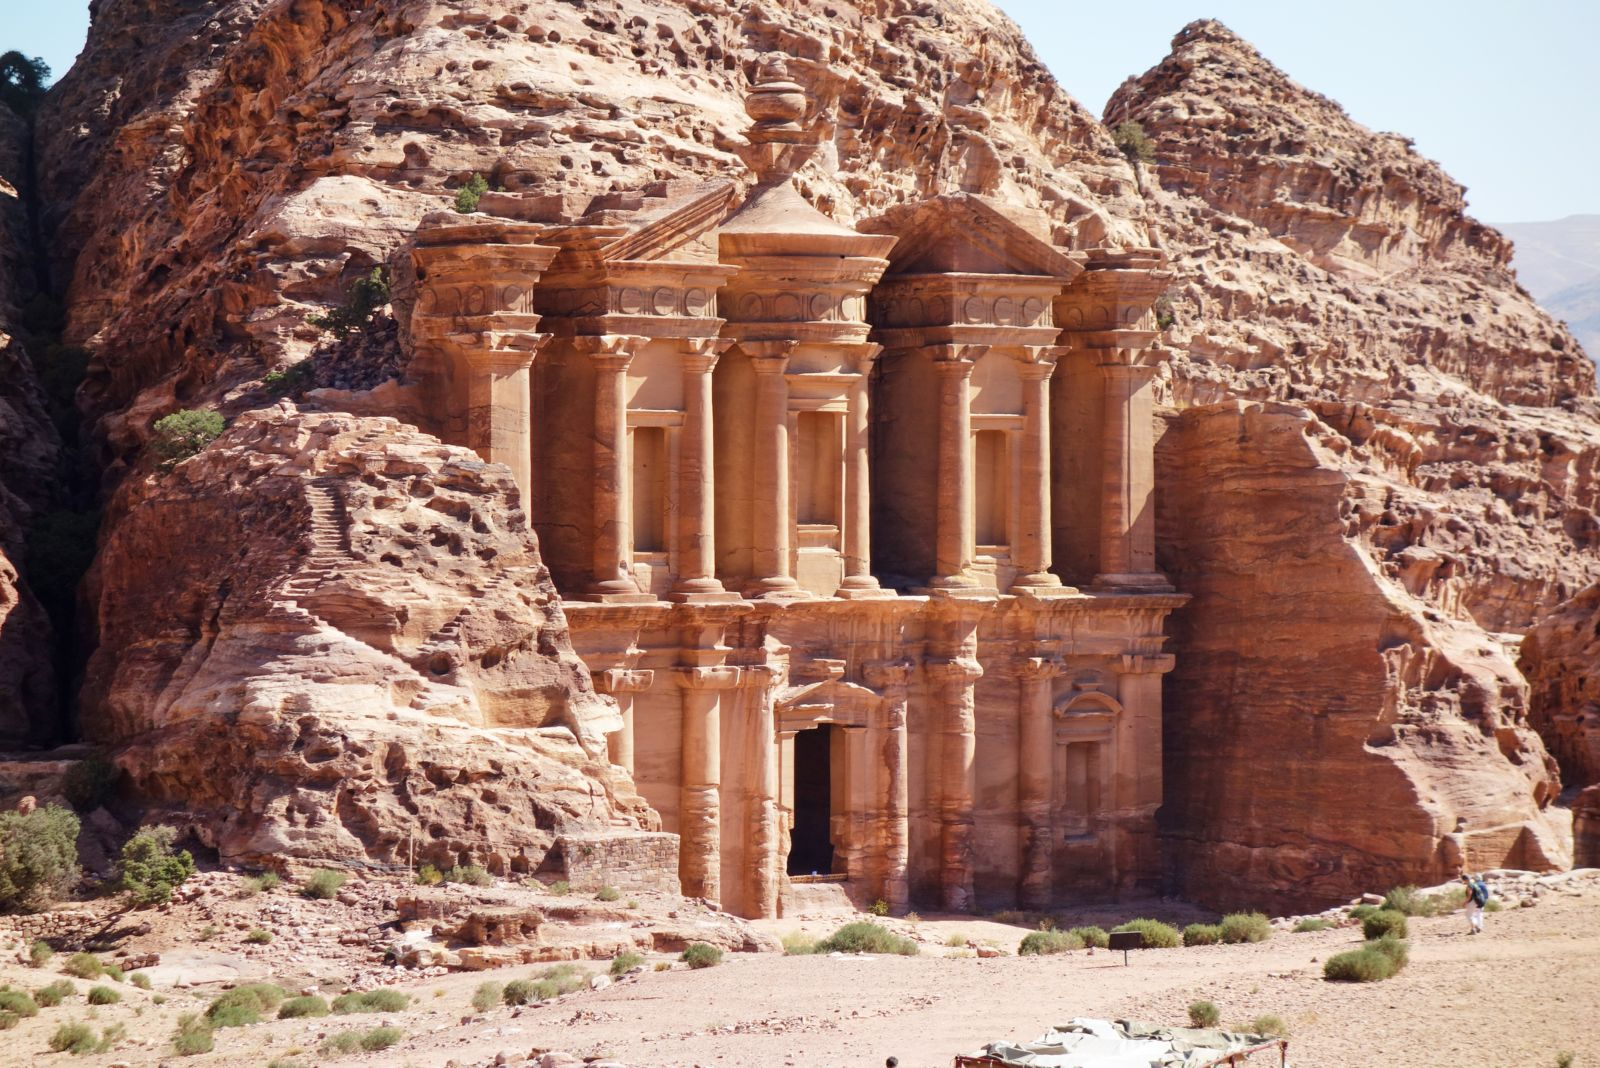 Petra, Wadi Rum and Jordan Highlights 3 Day Tour from Jerusalem